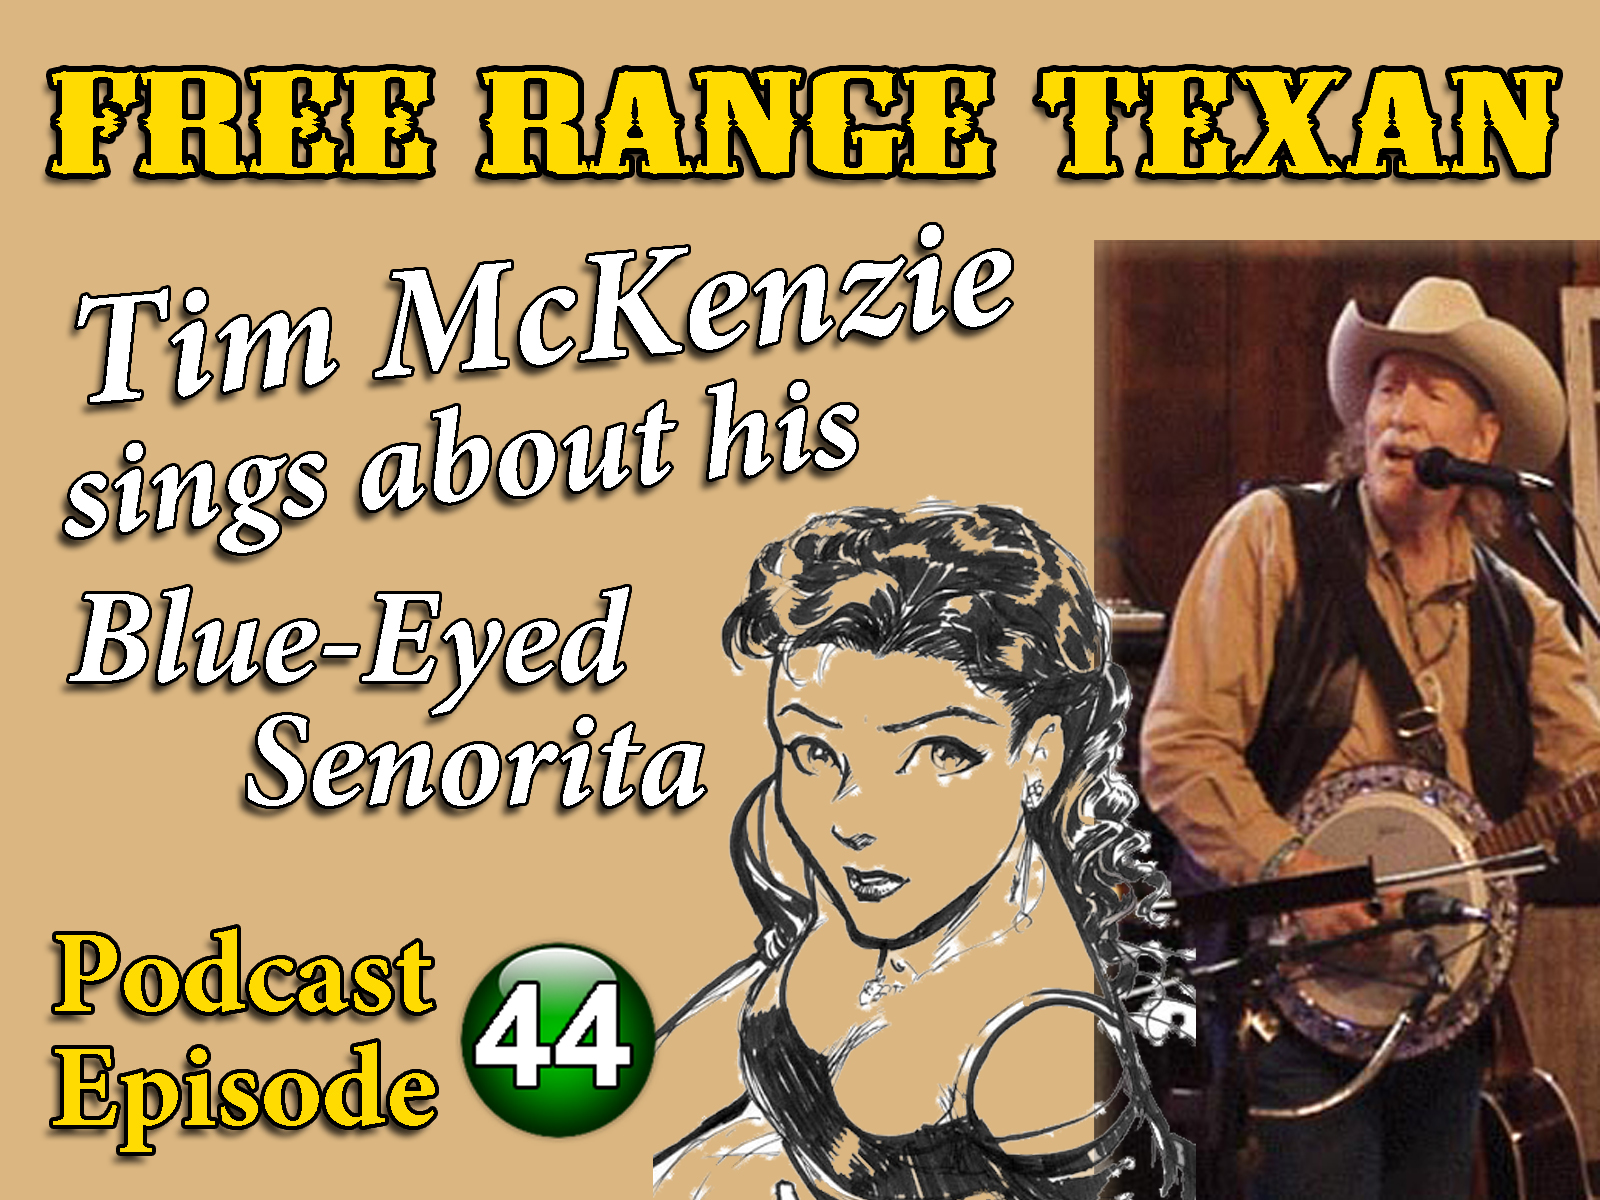 Free Range Texan Podcast Episode 44